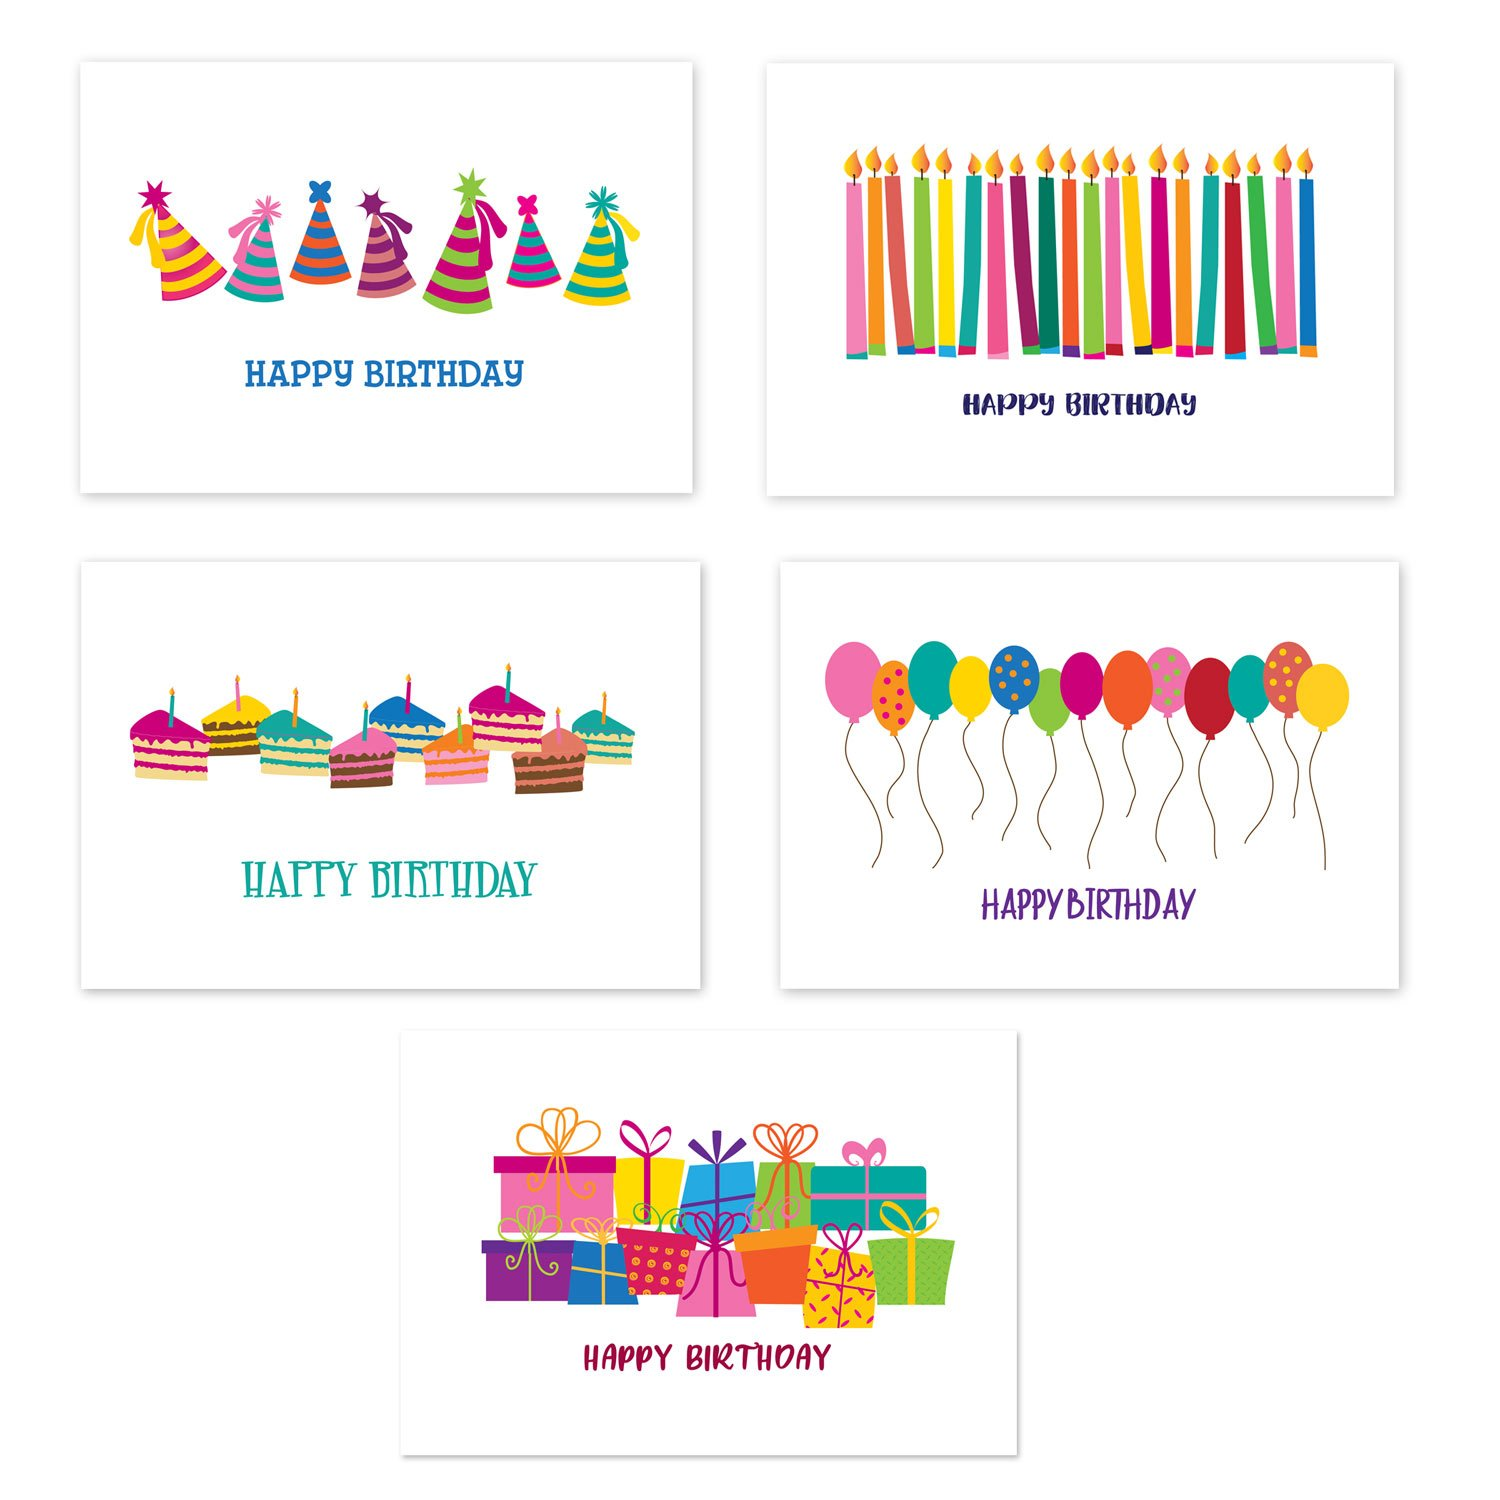 50 Happy Birthday Postcards - 5 Fun Birthday Designs - 4'' x 6'' Postcards